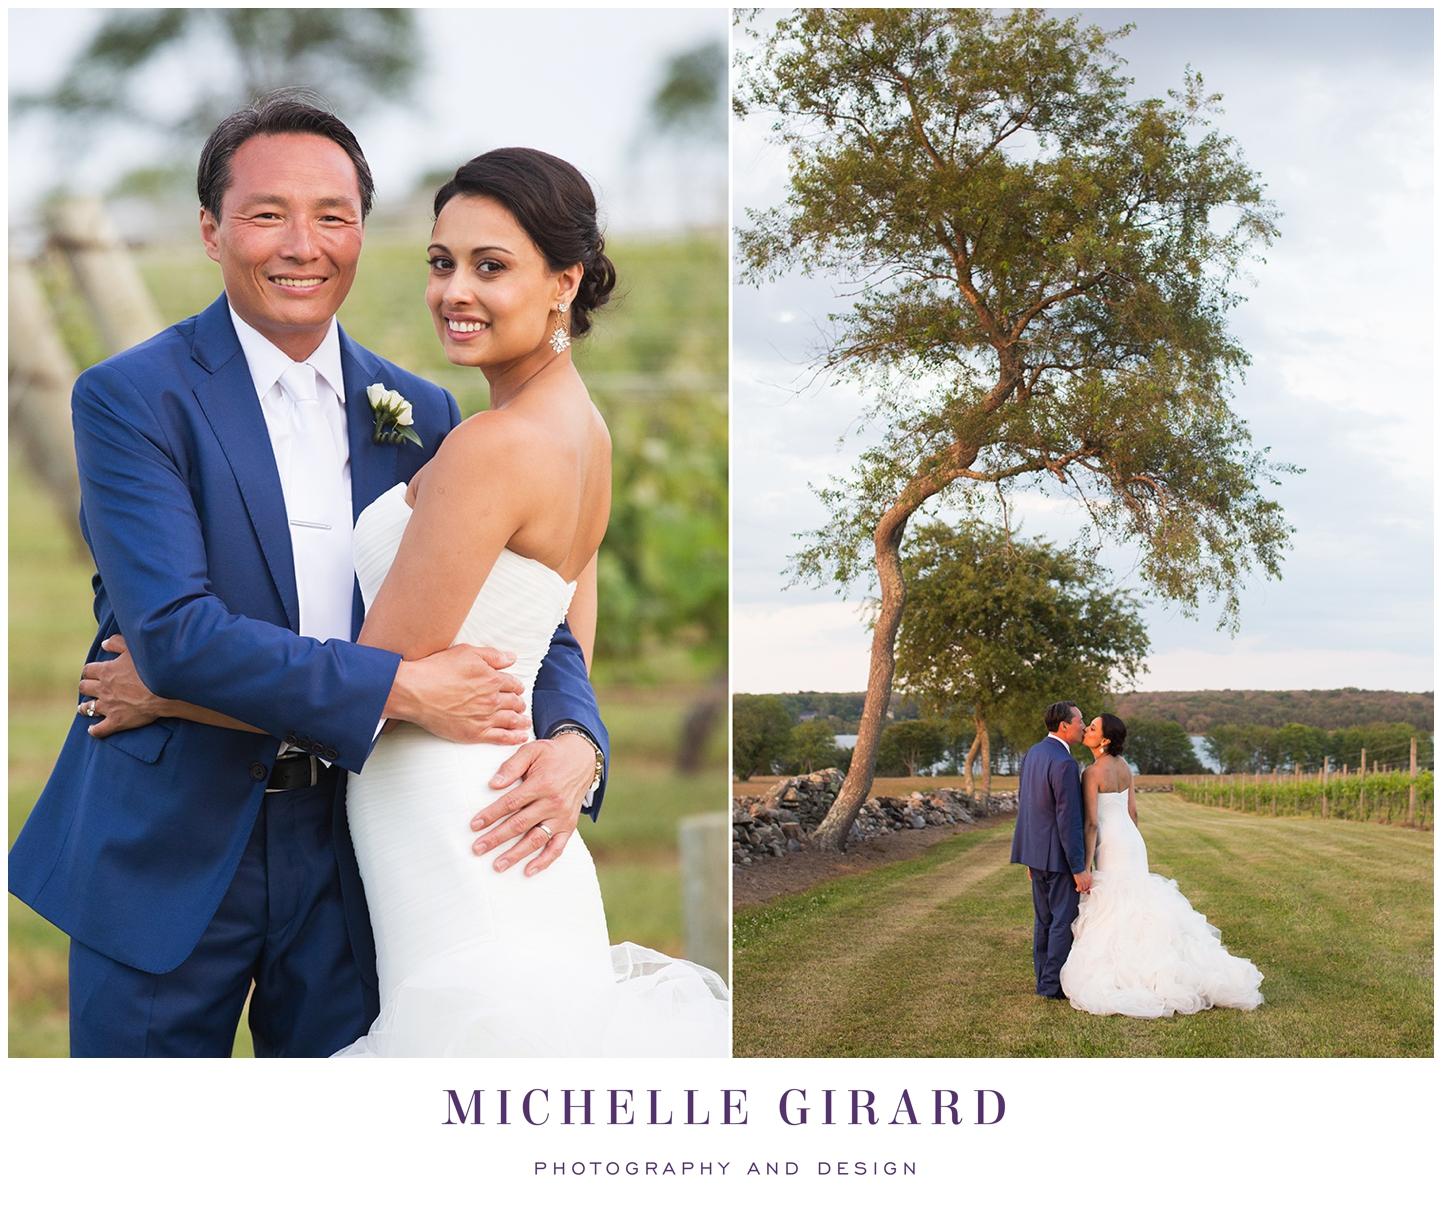 SakonnetVineyardJuneWedding_LittleComptonRI_MichelleGirardPhotography1.jpg